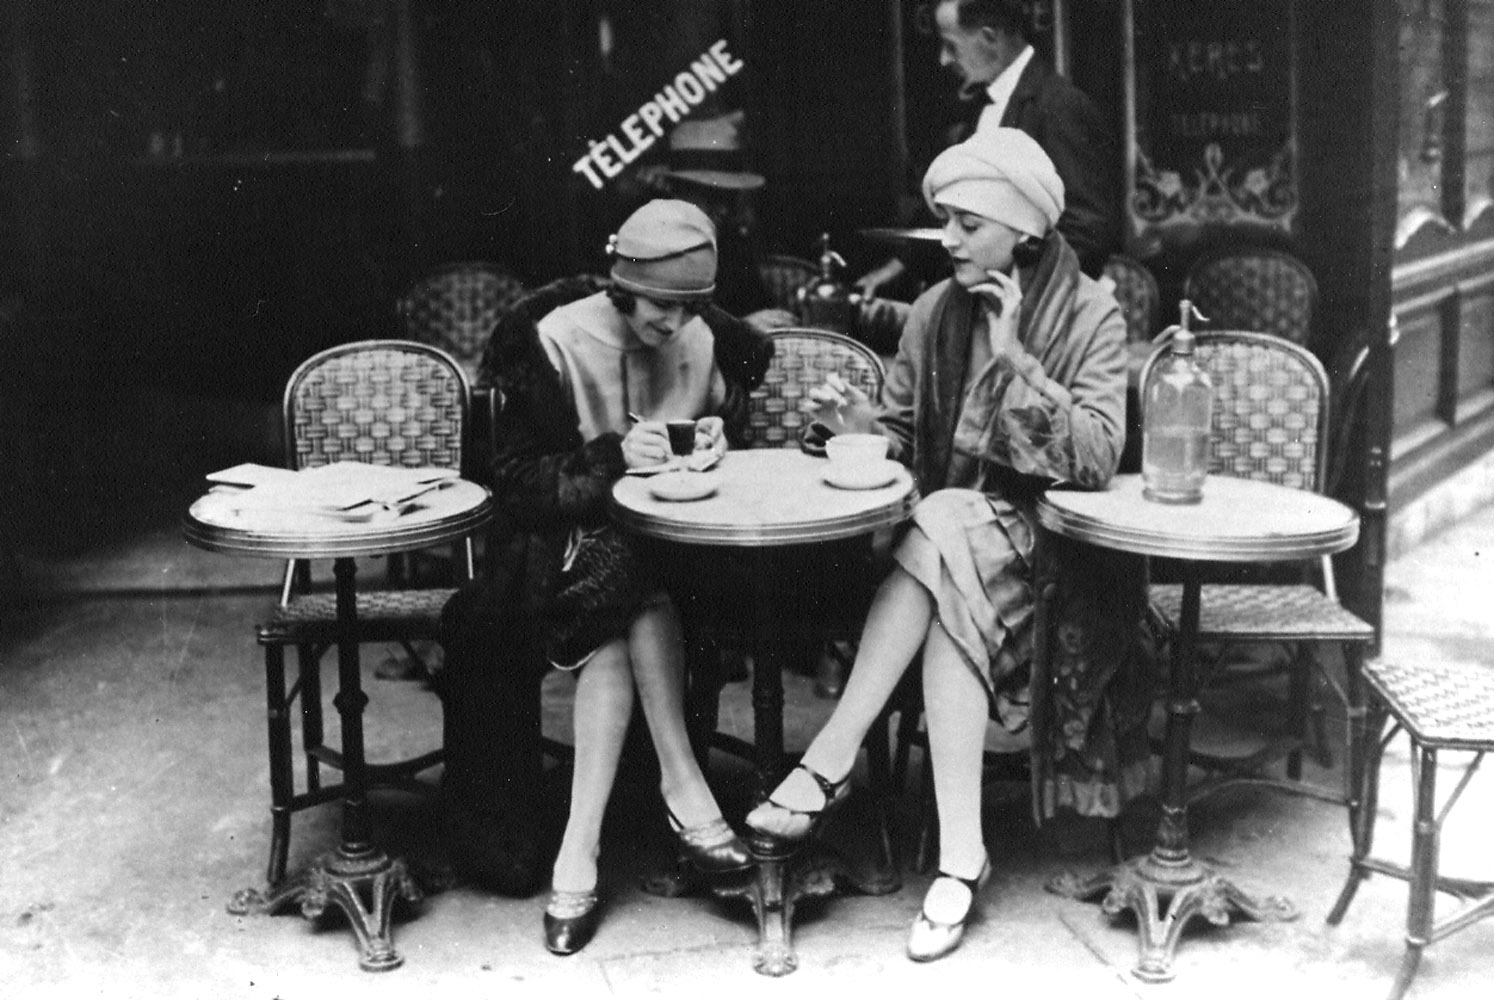 The French cafe: did the Existentialism of Sartre, de Beauvoir, and Camus come from this place? -